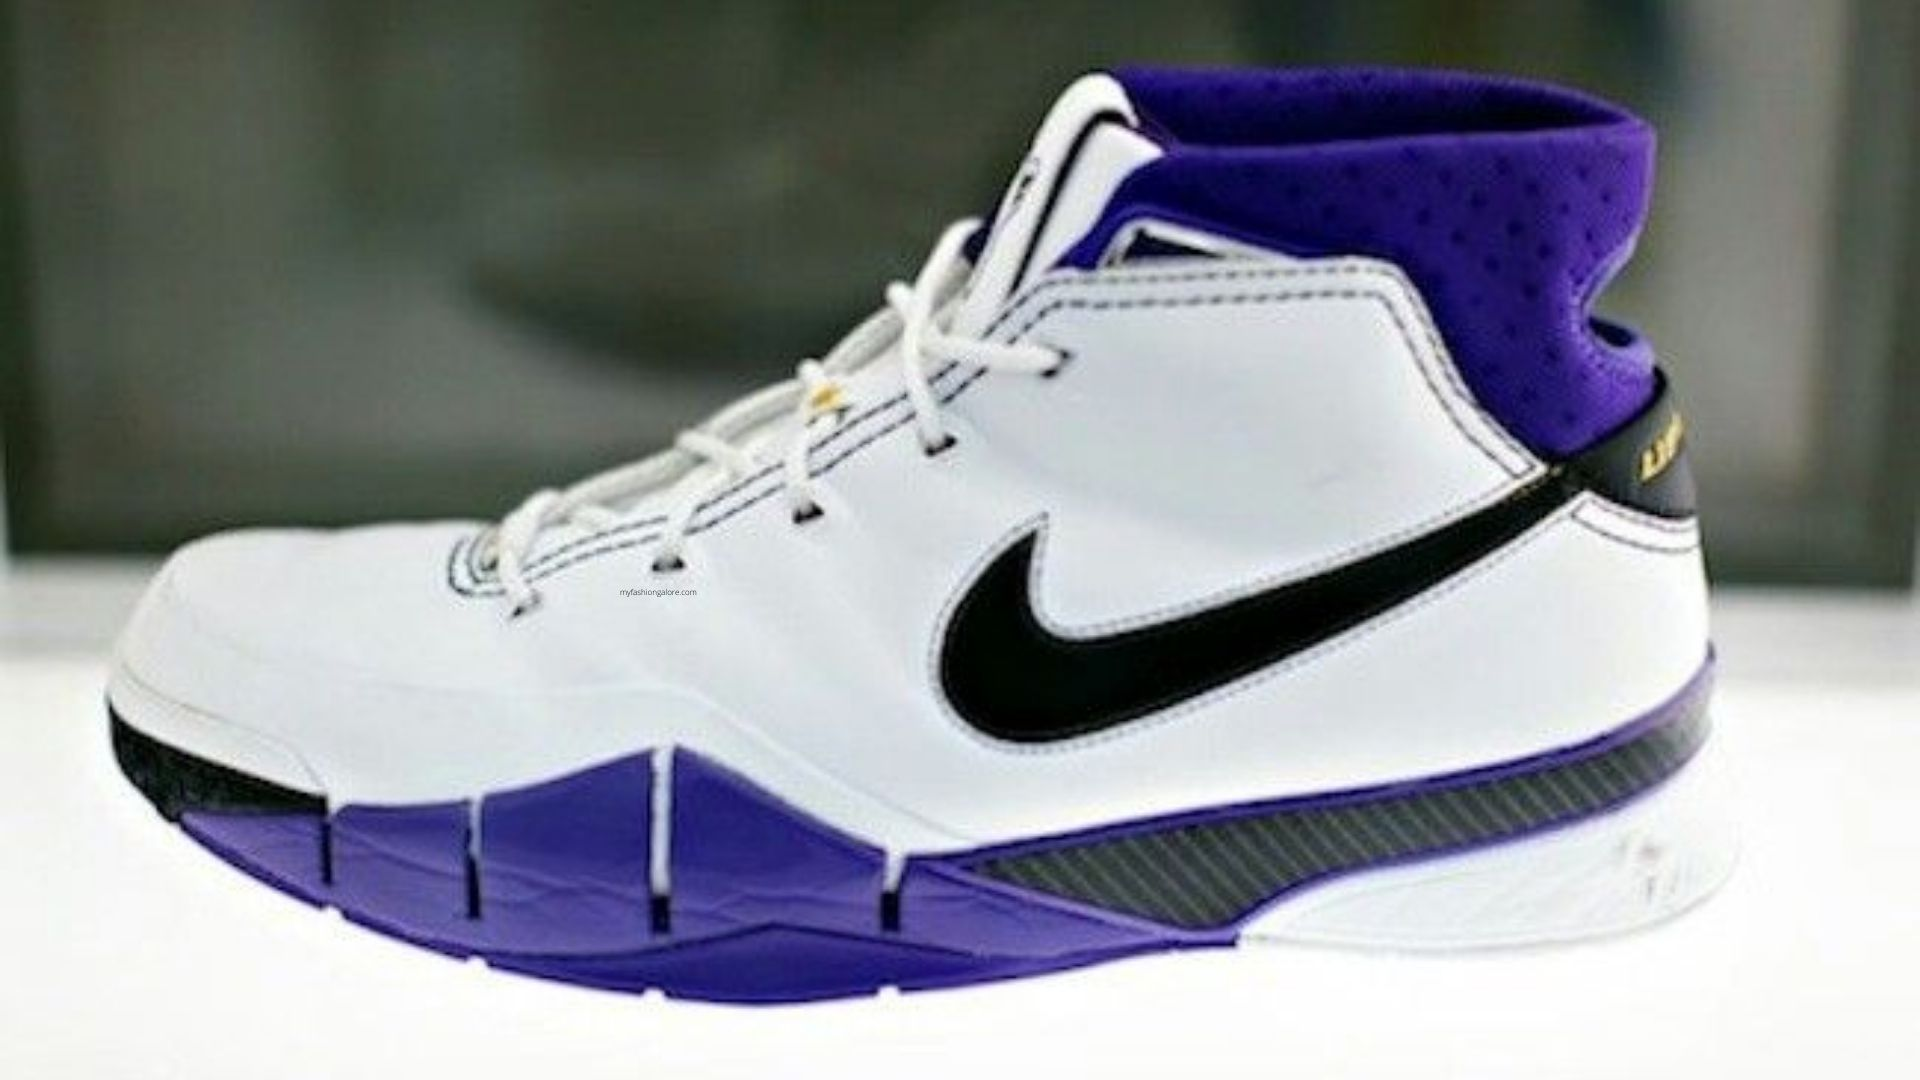 Famous shoes worn and designed for Kobe Bryant.